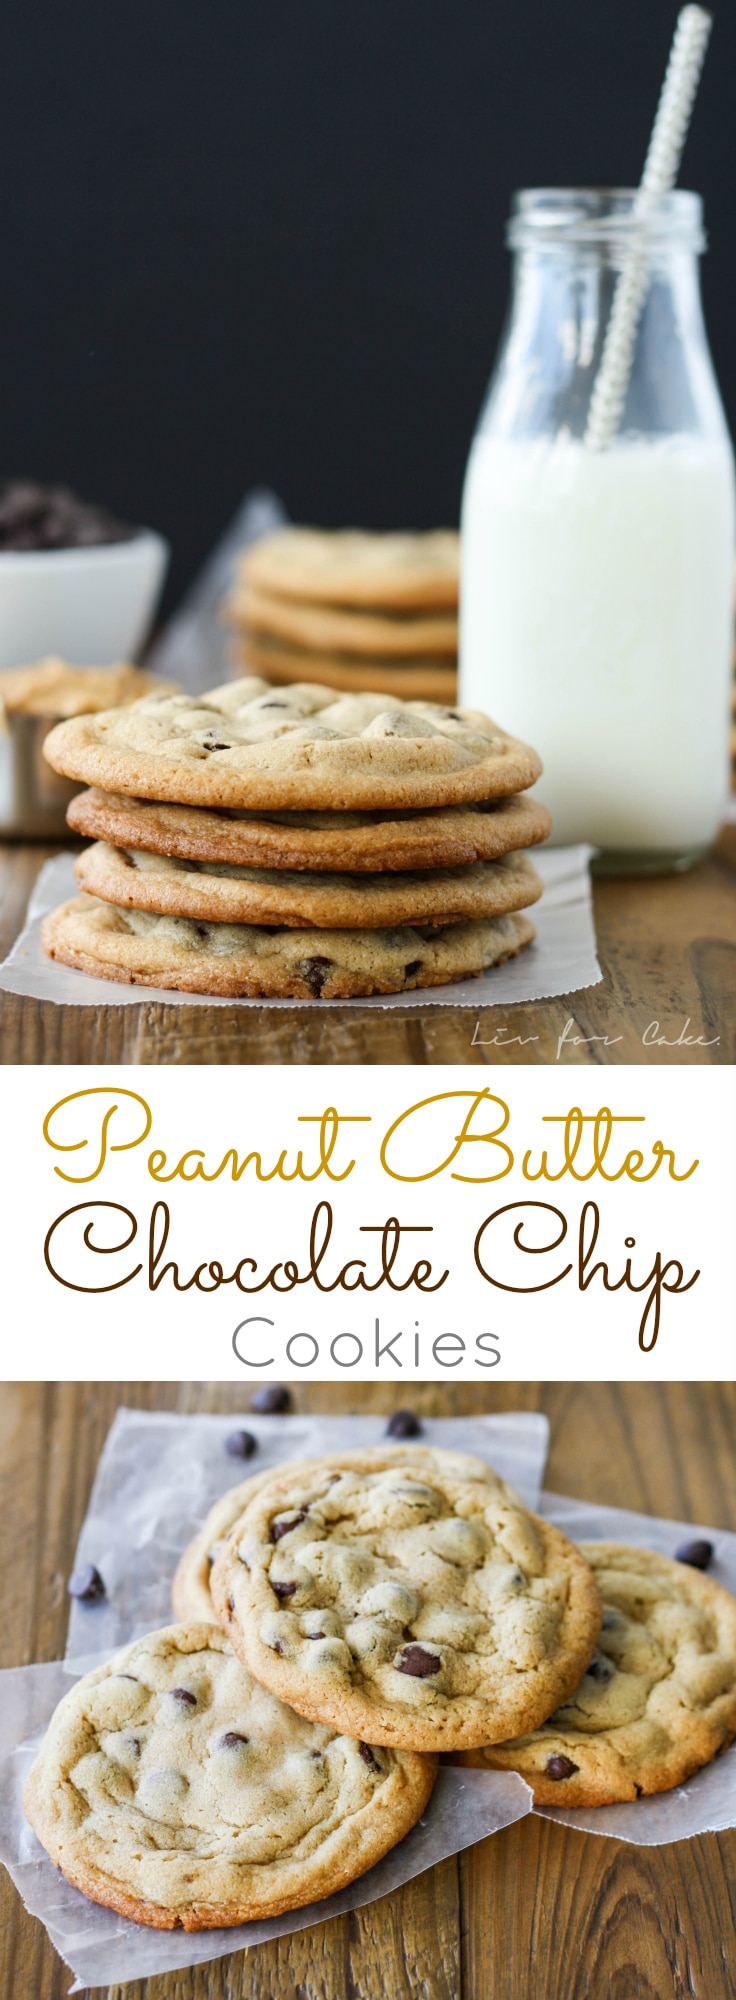 Peanut Butter Chocolate Chip Cookies! These chewy cookies are sweet, salty, and delicious. | livforcake.com